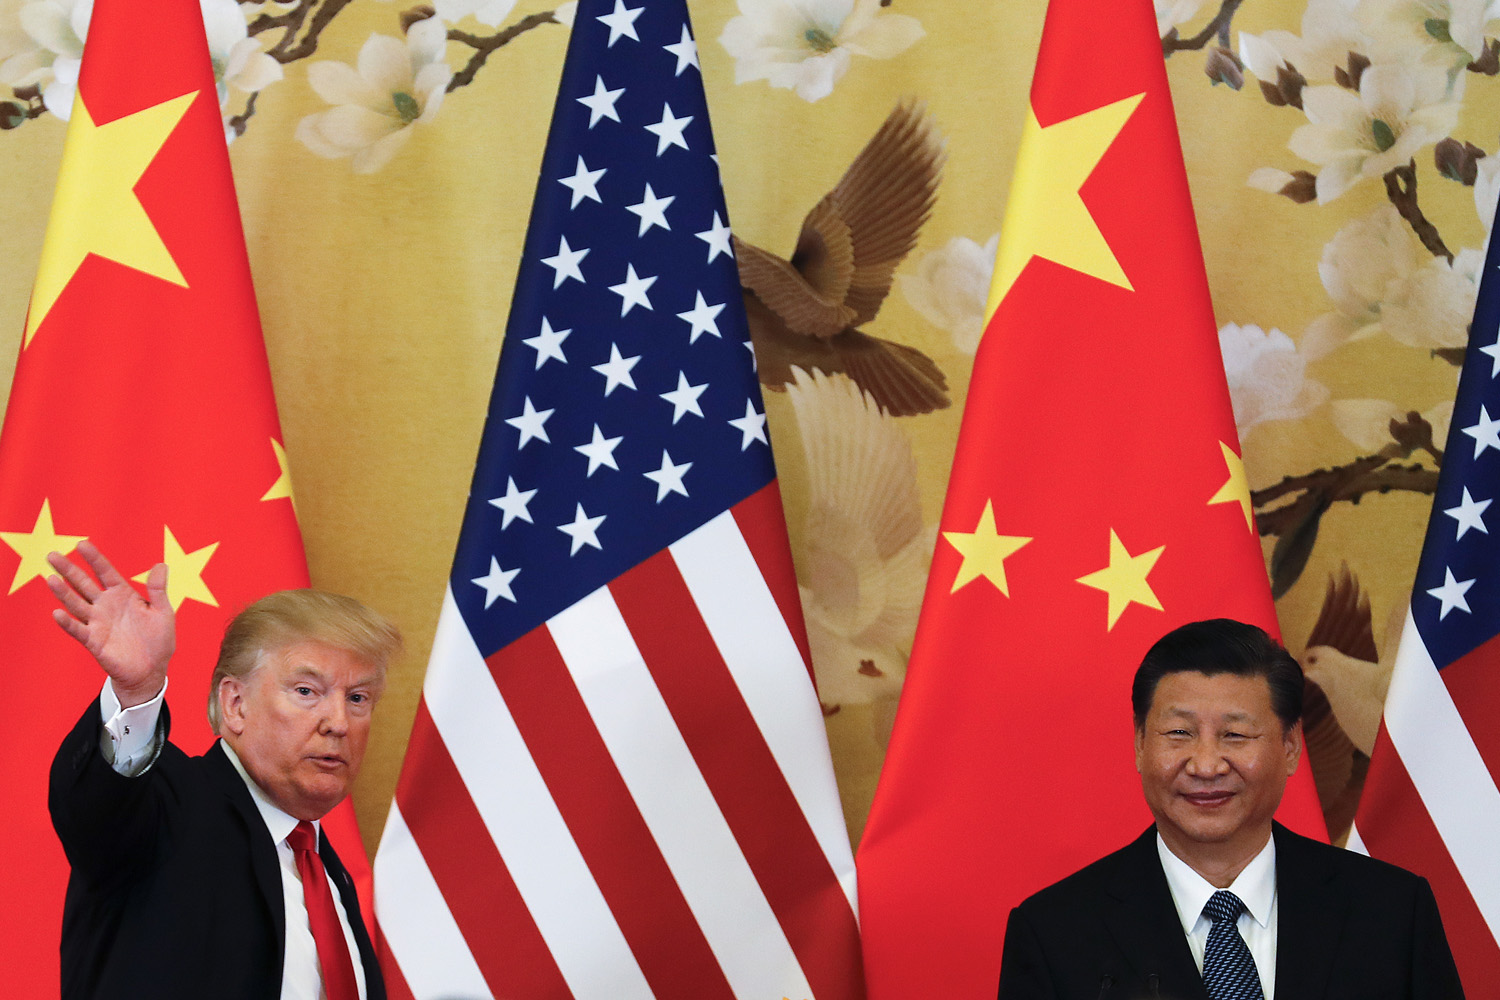 U.S. President Donald Trump waves next to Chinese President Xi Jinping in Beijing. (Andy Wong/AP)